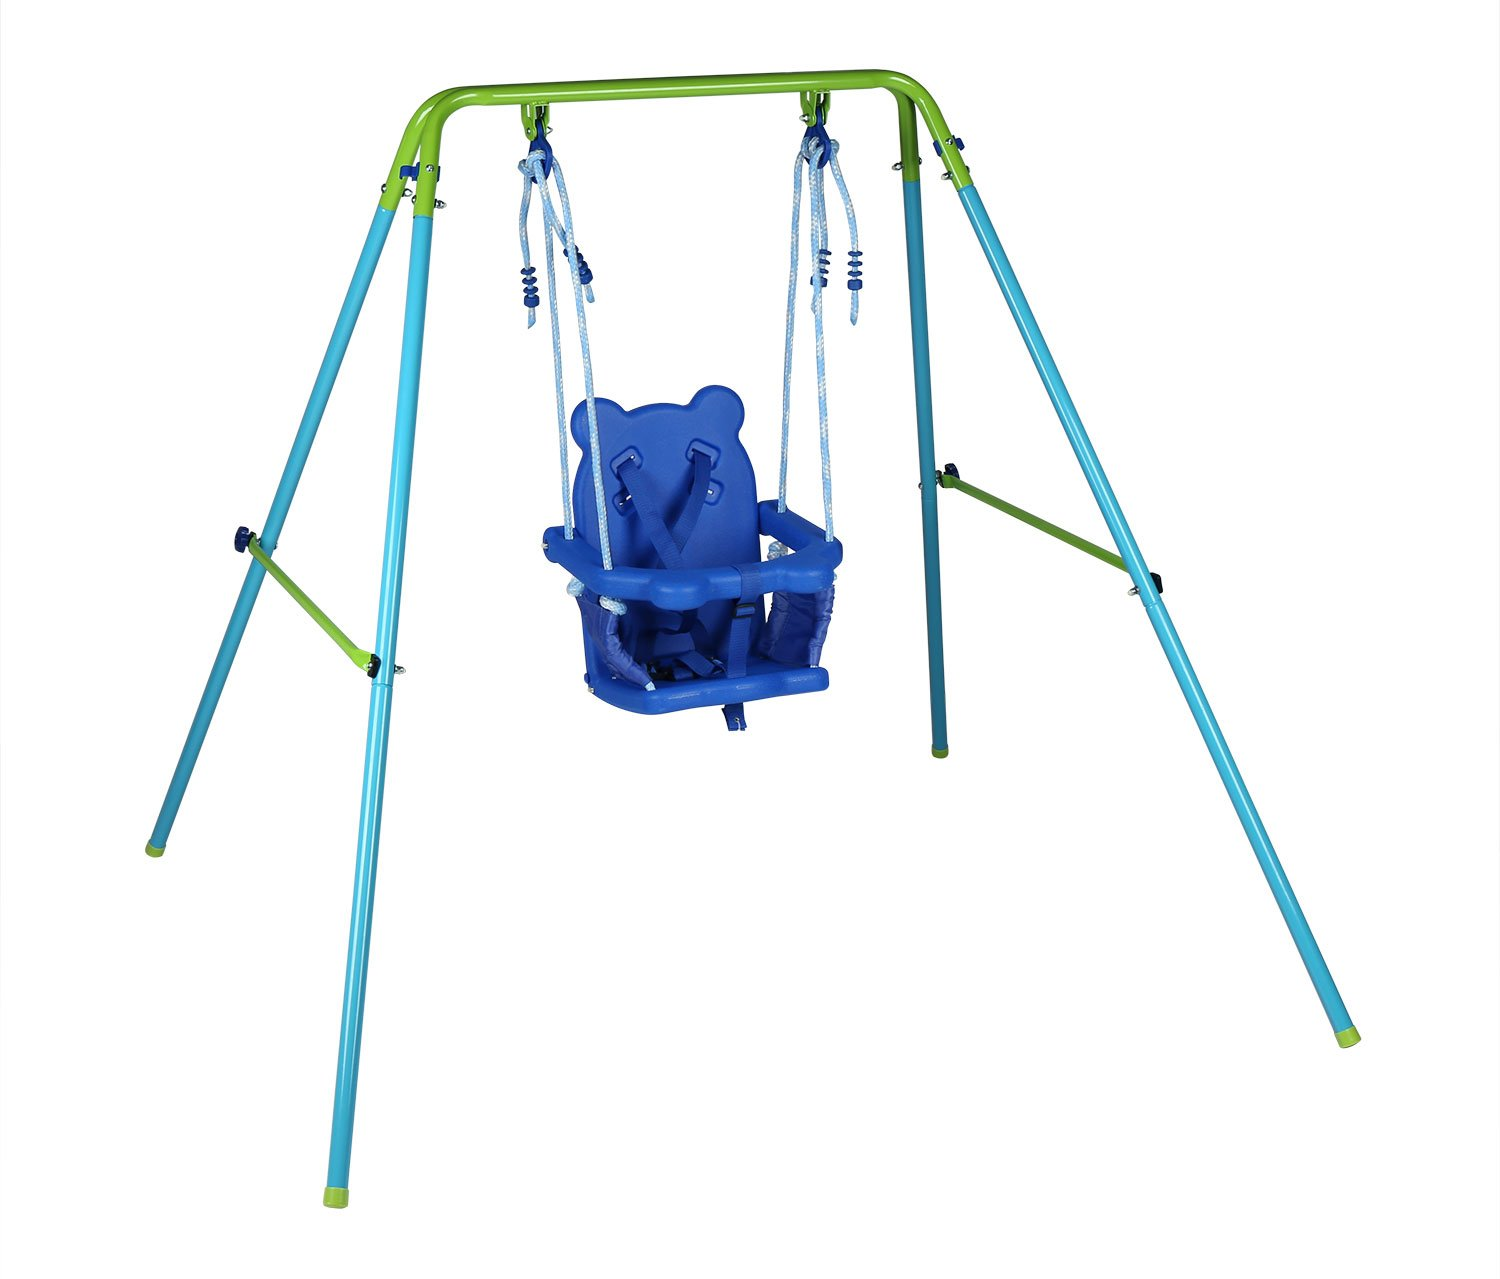 Outdoor baby swing - Blue Folding Swing Outdoor Indoor Swing Toddler Swing With Safety Baby Seat For Baby Chirldren S Gift Amazon Co Uk Toys Games